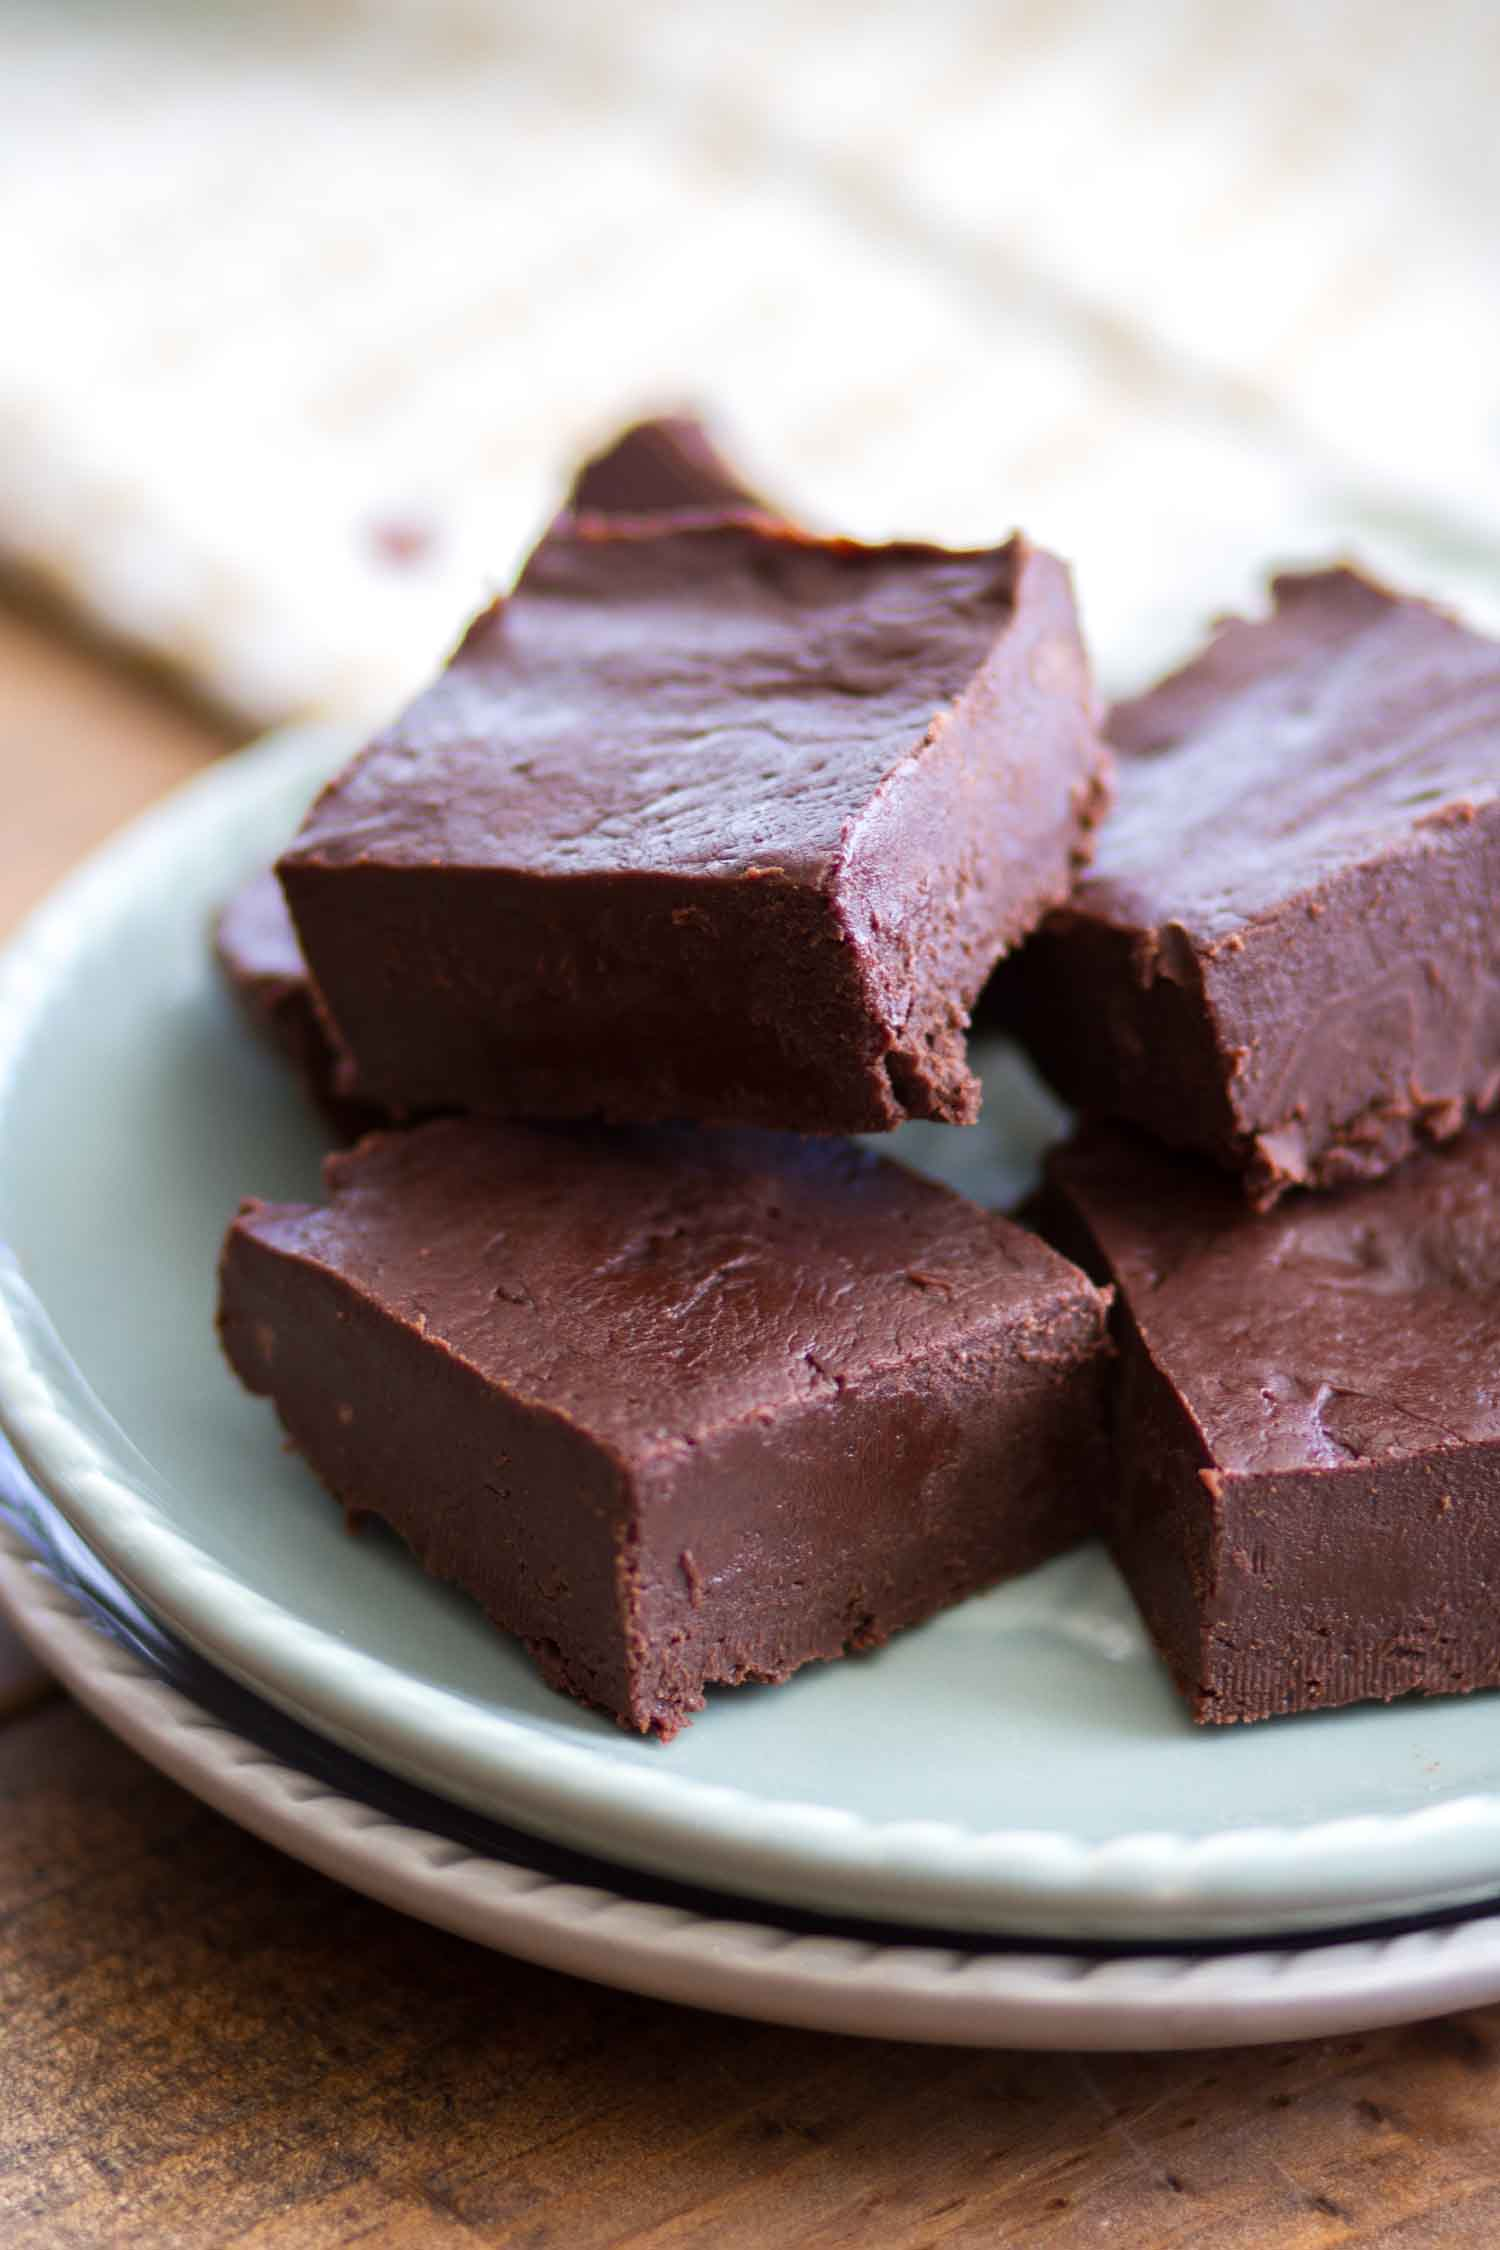 Chocolate fudge recipe on plate